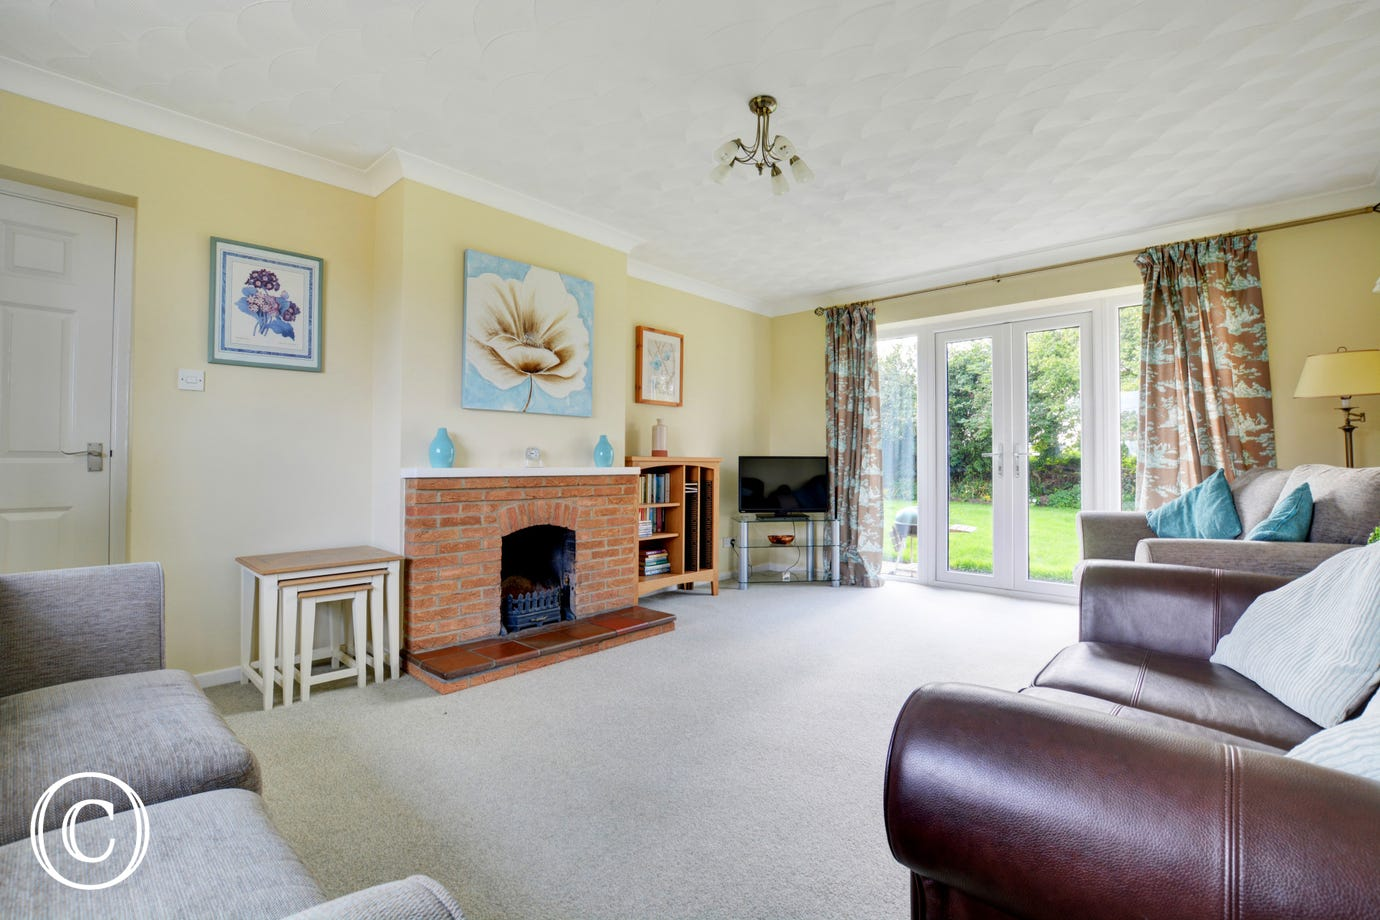 Traditionally decorated and furnished with French doors to the garden, this is a lovely family room